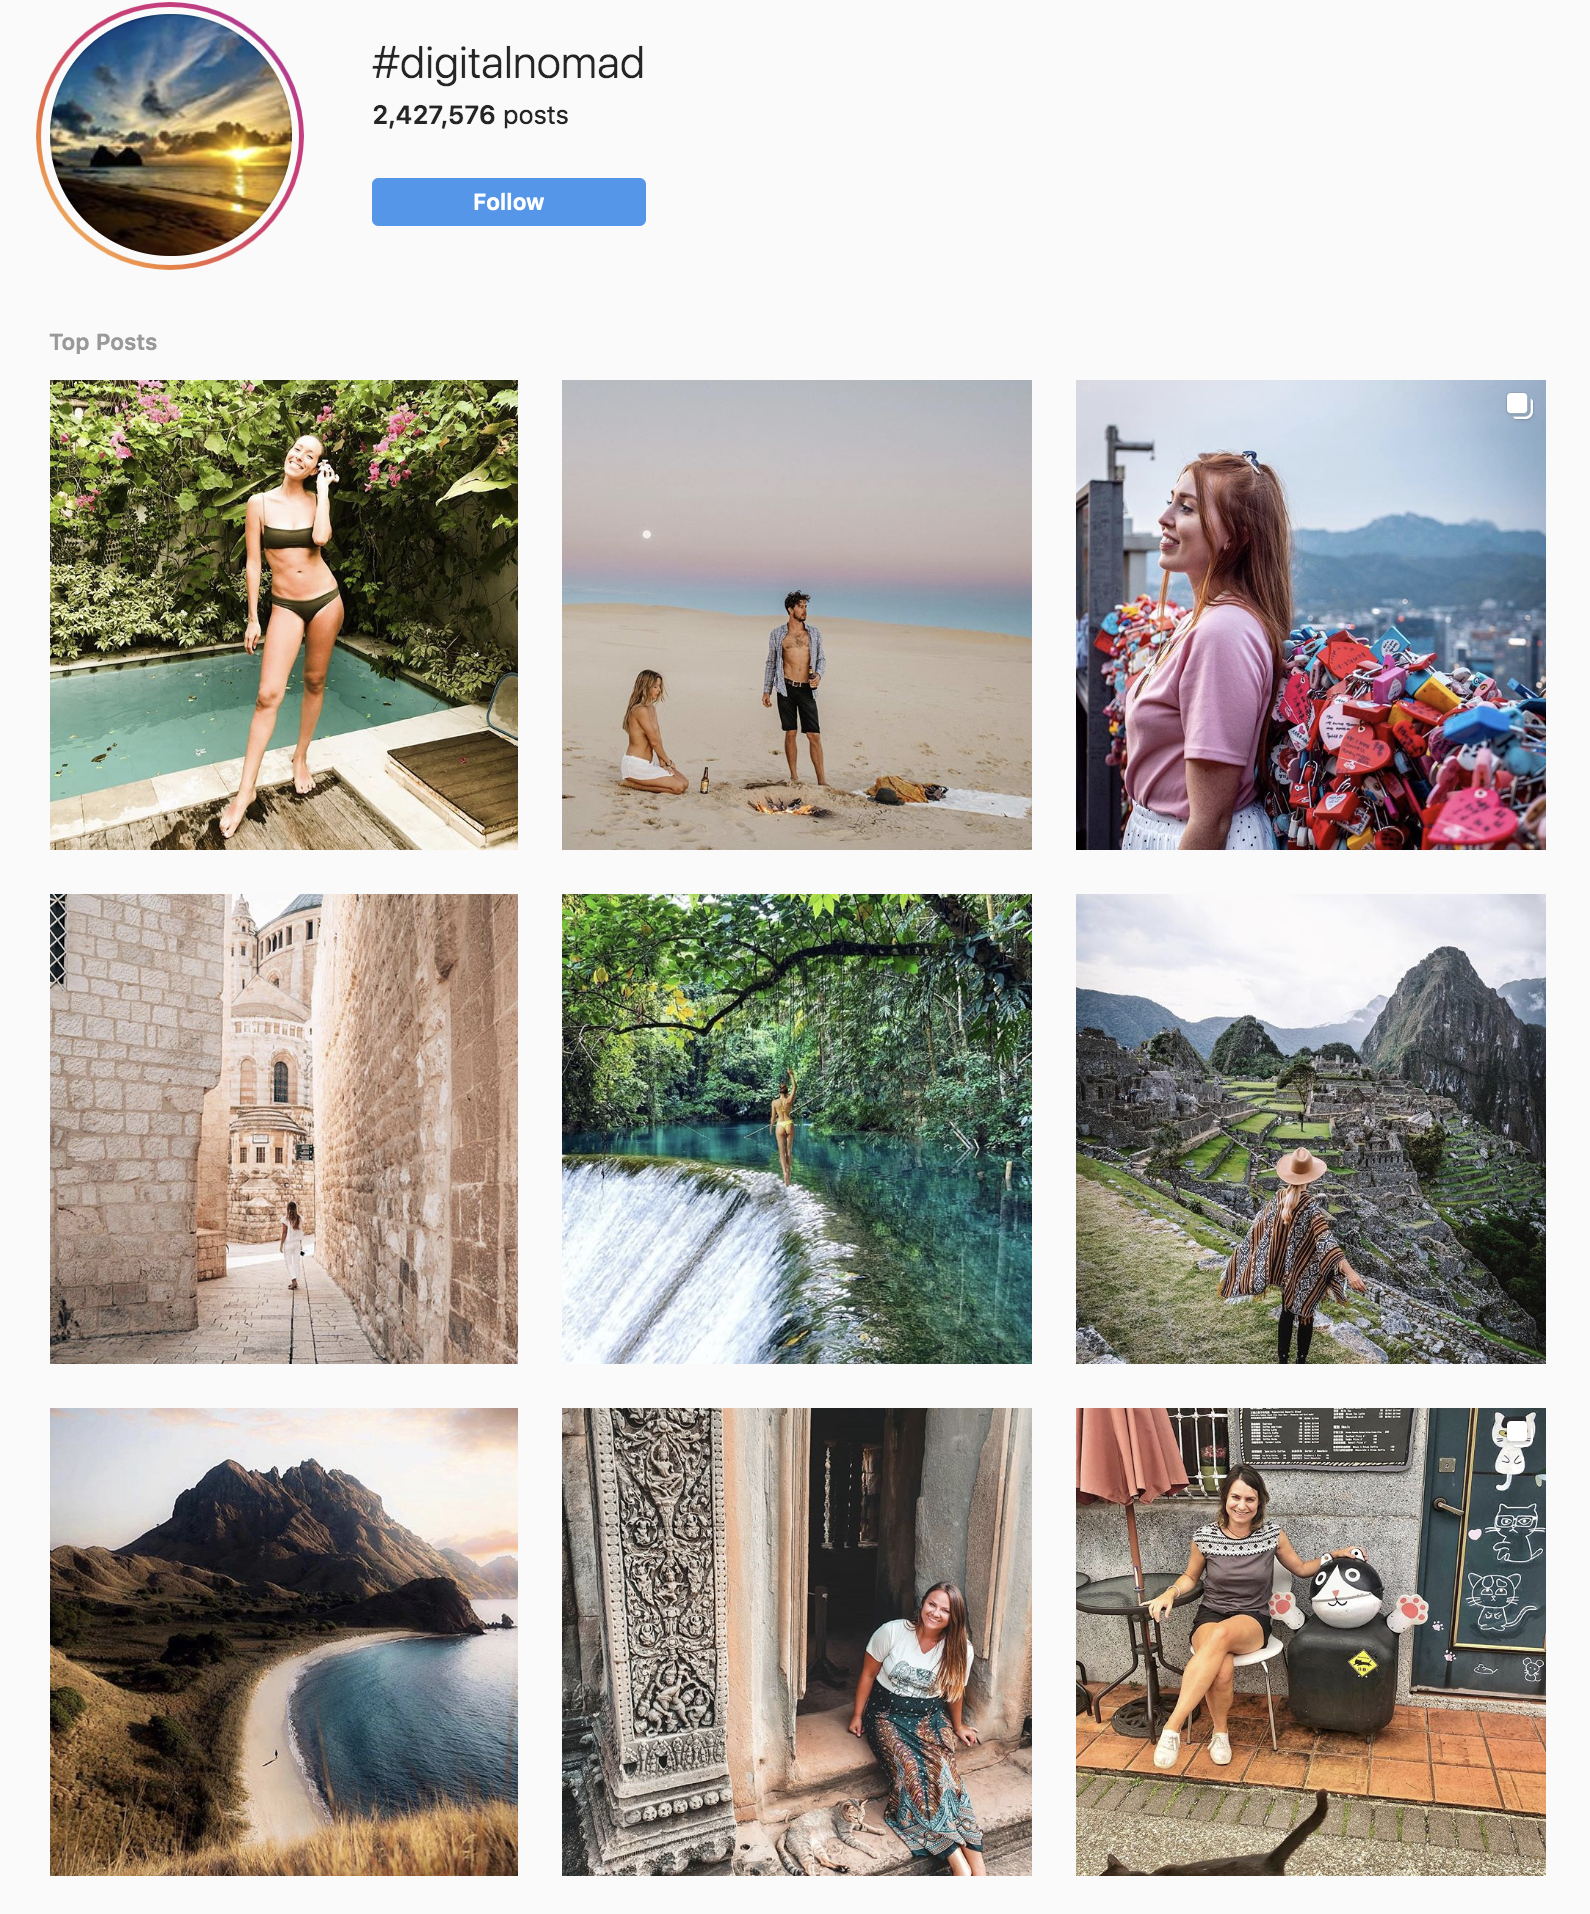 Just one look at #digitalnomad on Instagram will fill you with a serious case of wanderlust… and envy. -